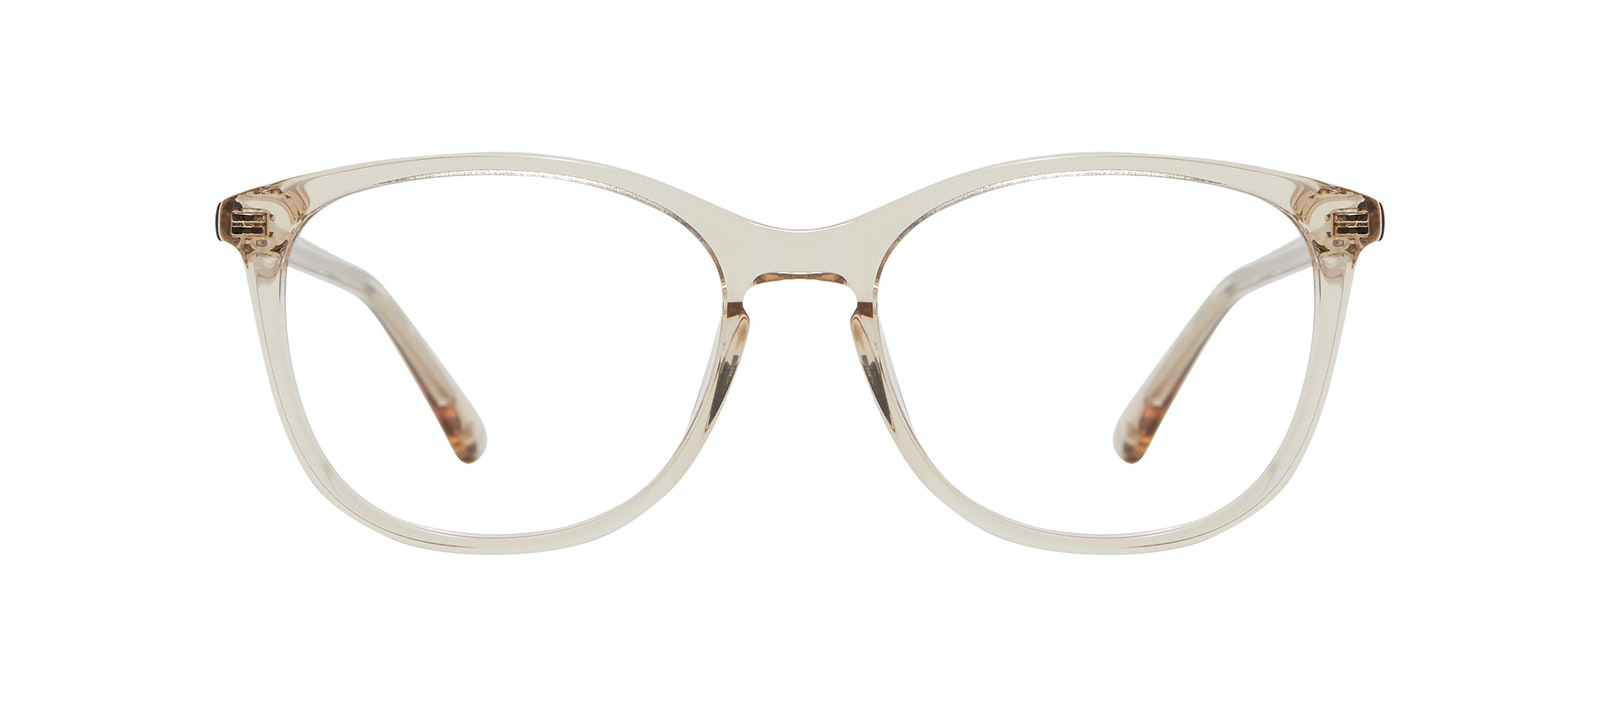 Affordable Fashion Glasses Rectangle Square Round Eyeglasses Women Nadine S Prosecco Front